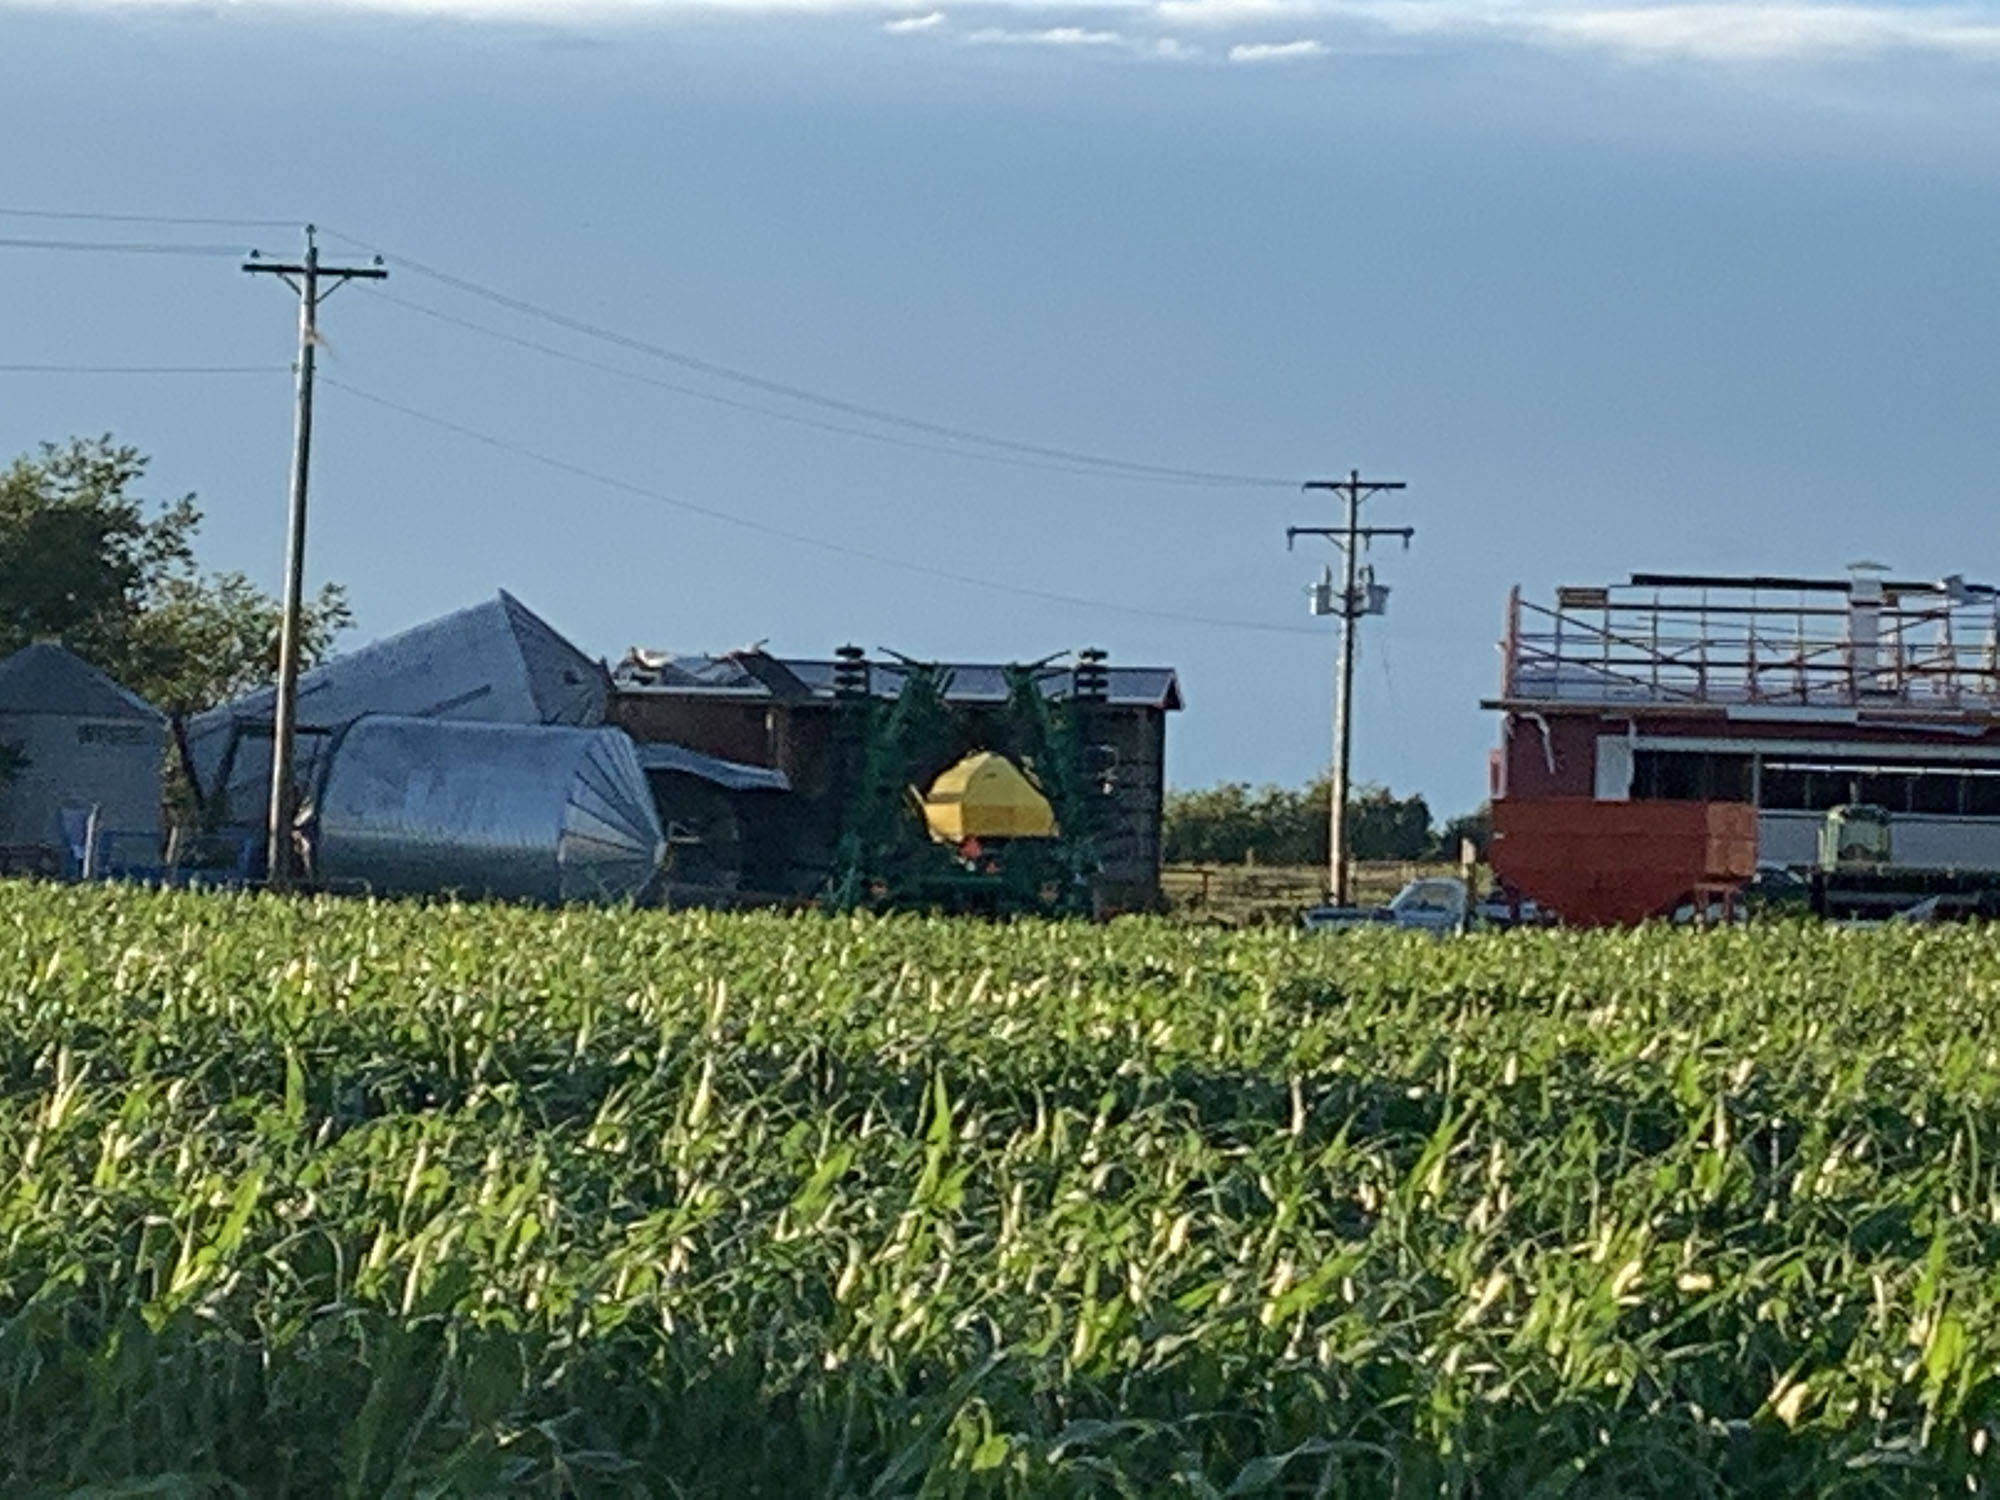 July 16, 2020 storm created a significant amount of damage throughout Millet, Alta. Photo submitted.